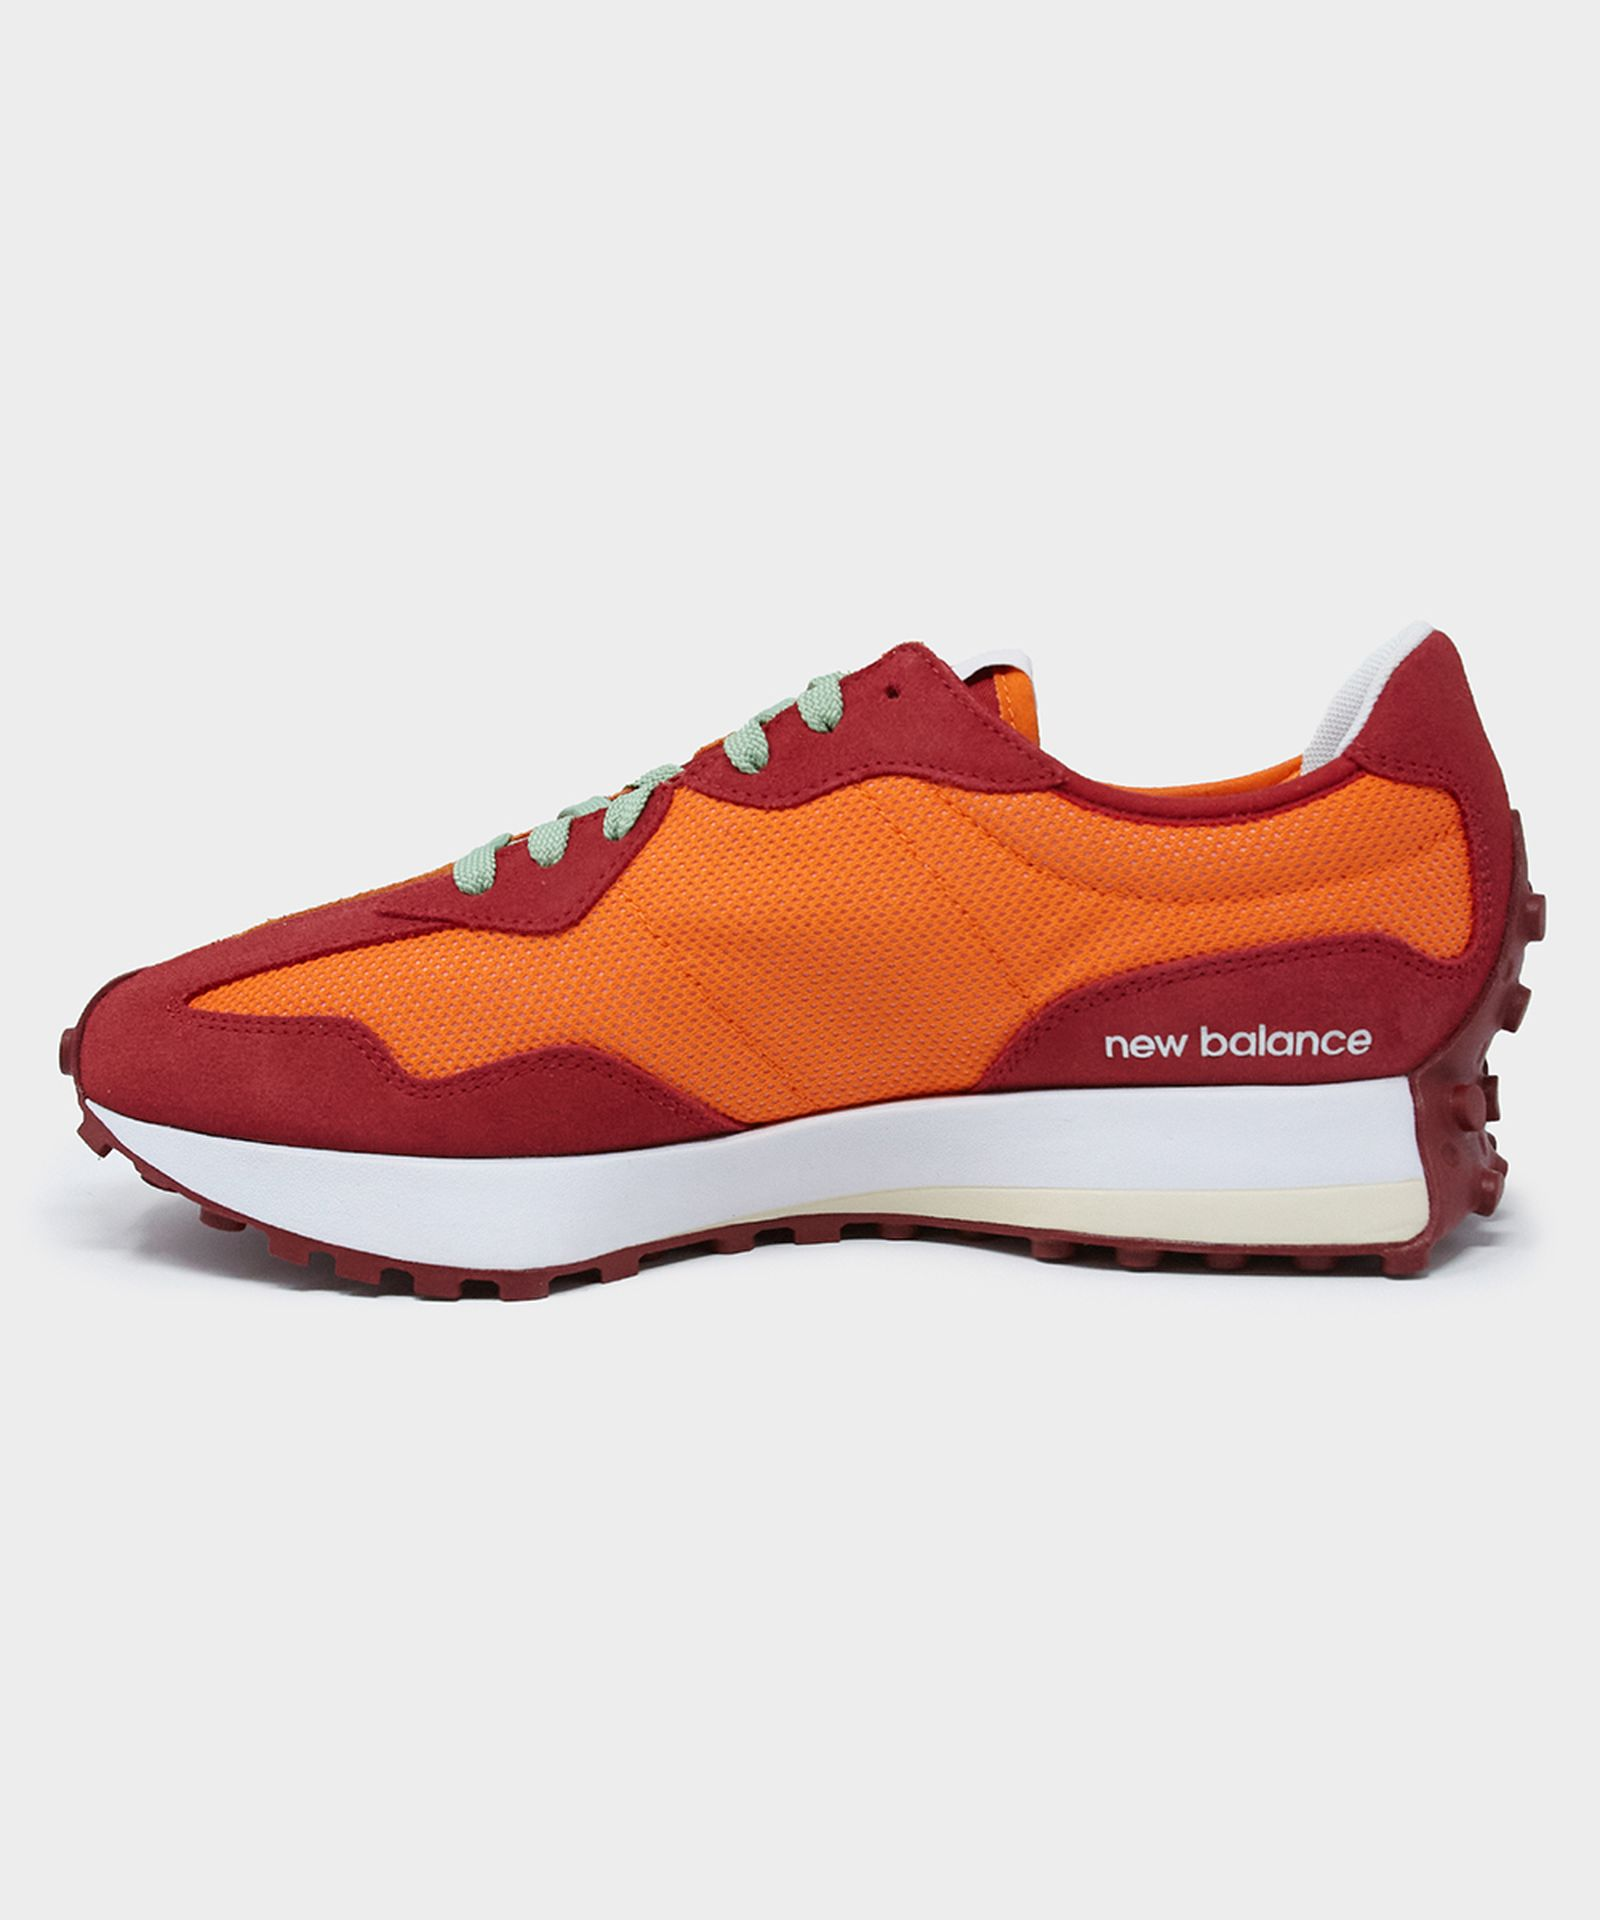 todd-snyder-new-balance-327-farmers-market-release-date-price-1-02